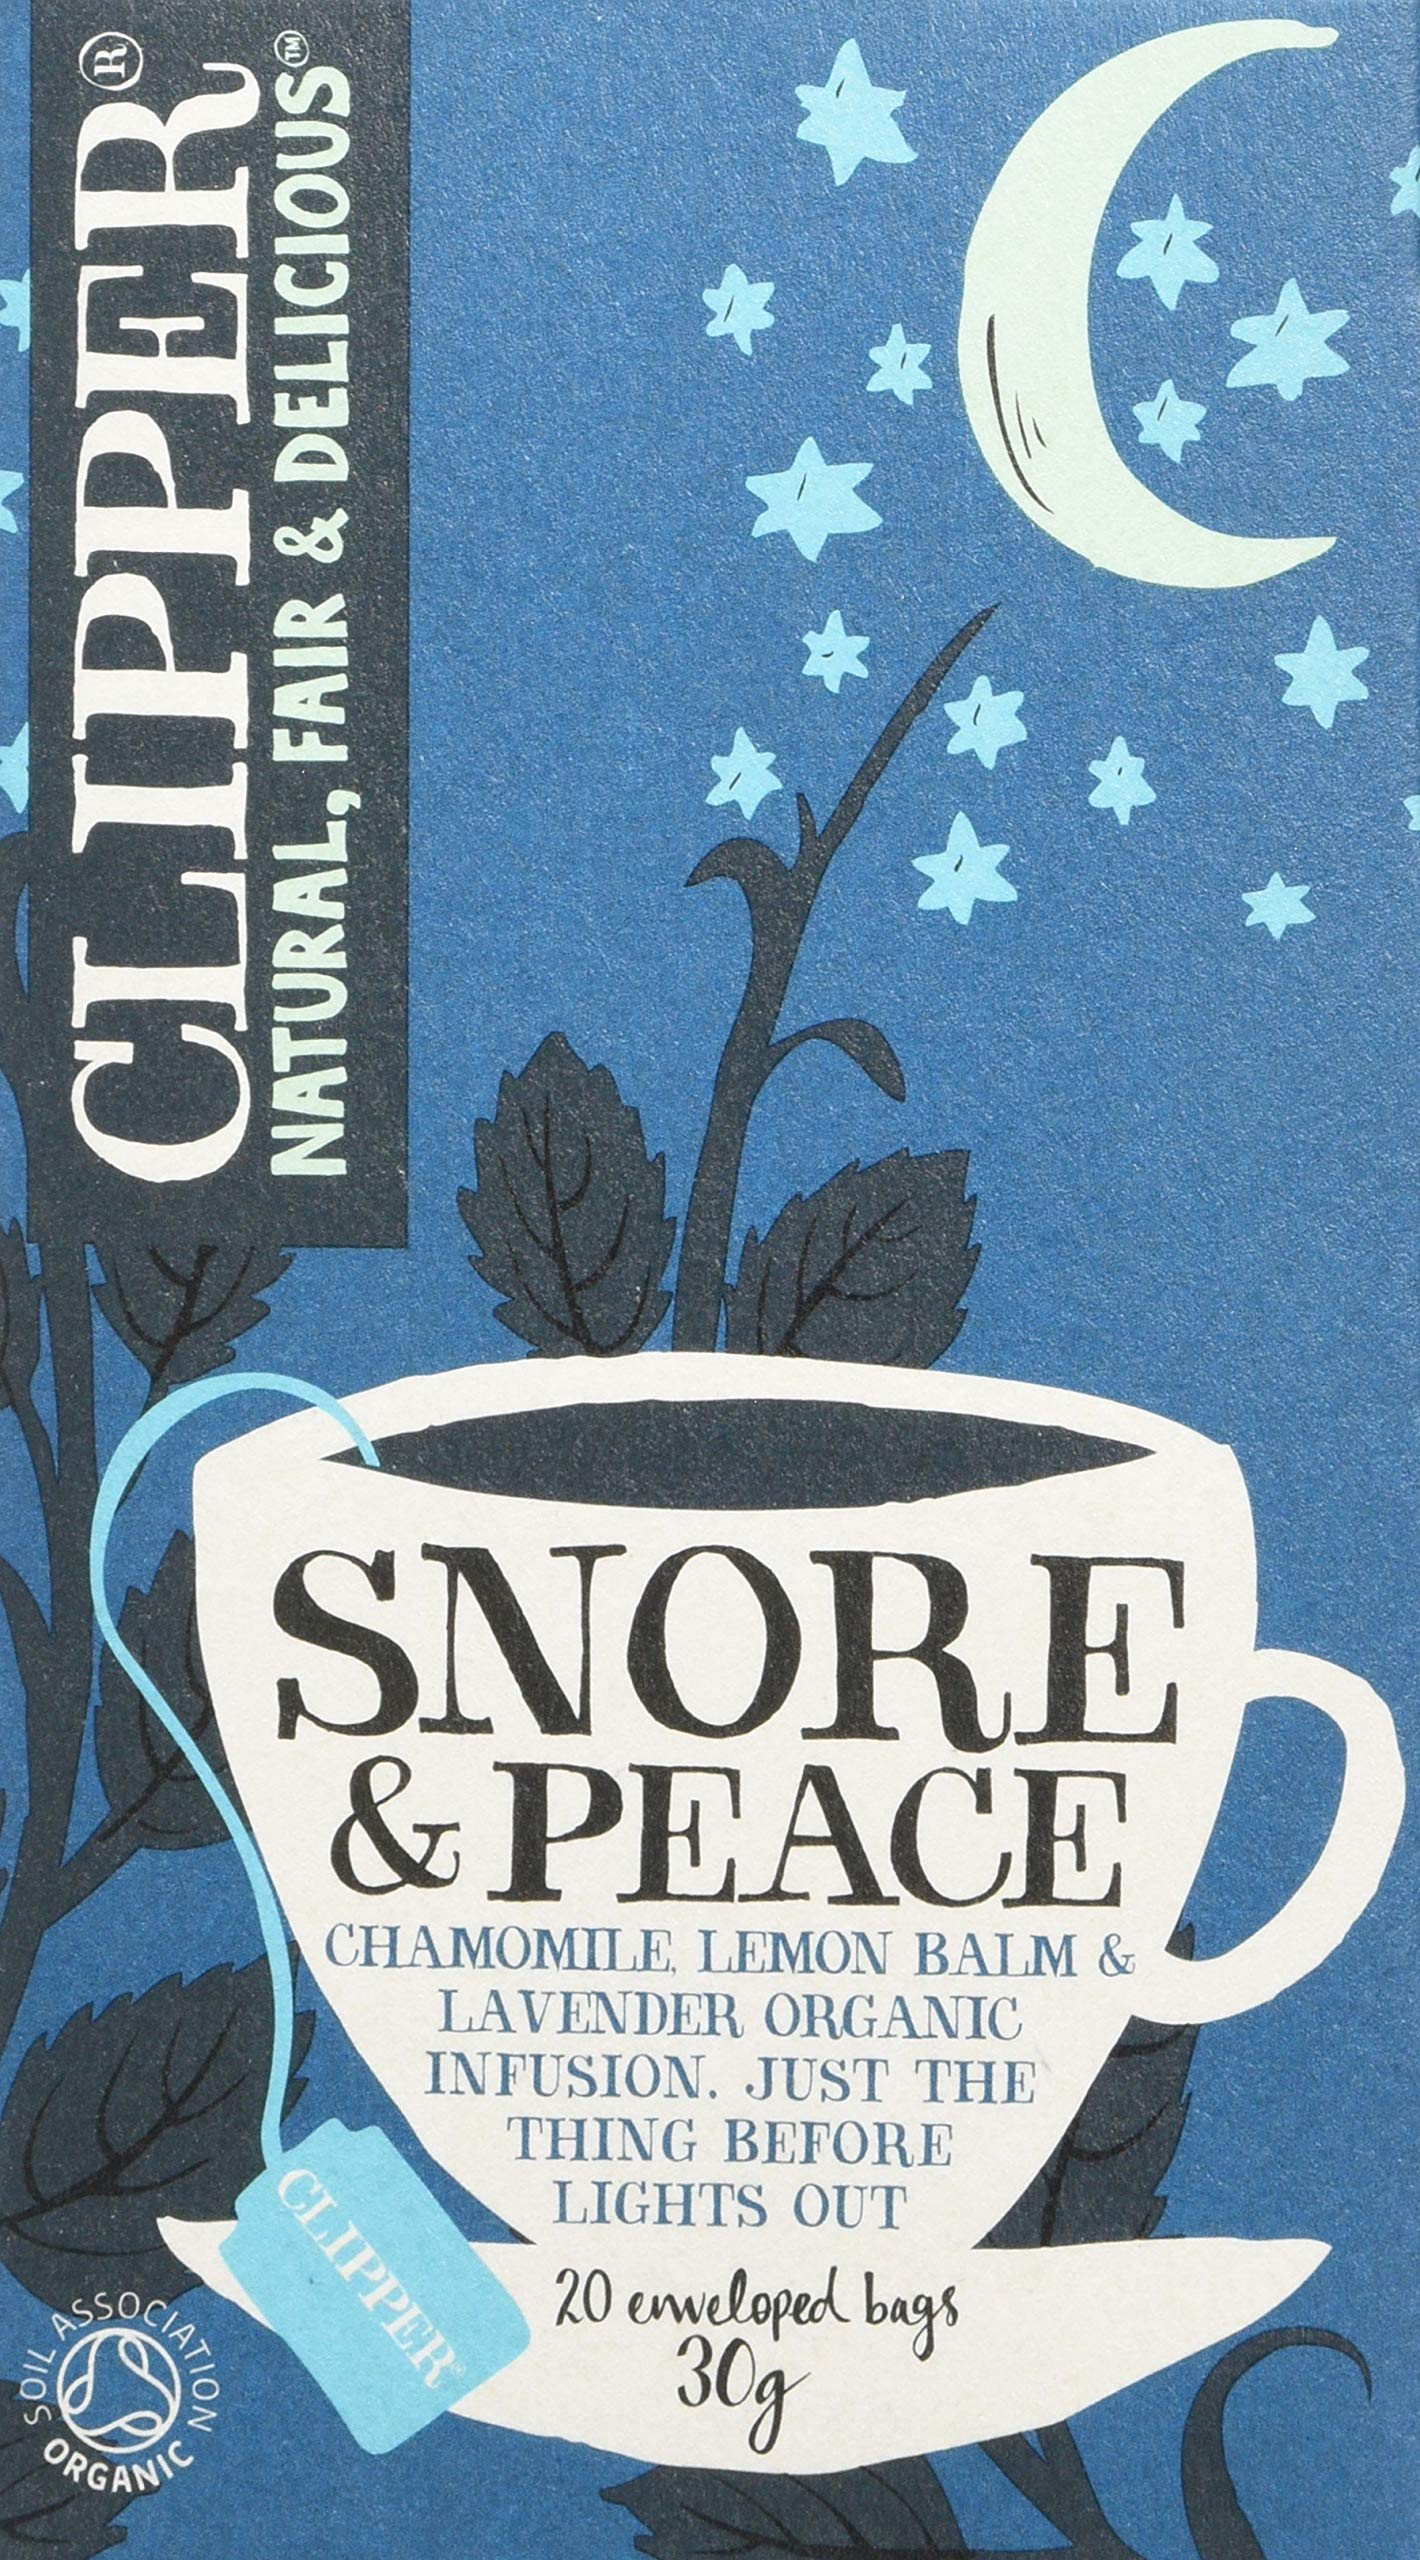 Clipper organic snore and peace tea bundle (soil association) (infusions) (sleep aid) (6 packs of 20 bags) (120 bags) (a floral, vegetal tea with aromas of camomile, lavender, lemon balm) (brews in 2-5 minutes)